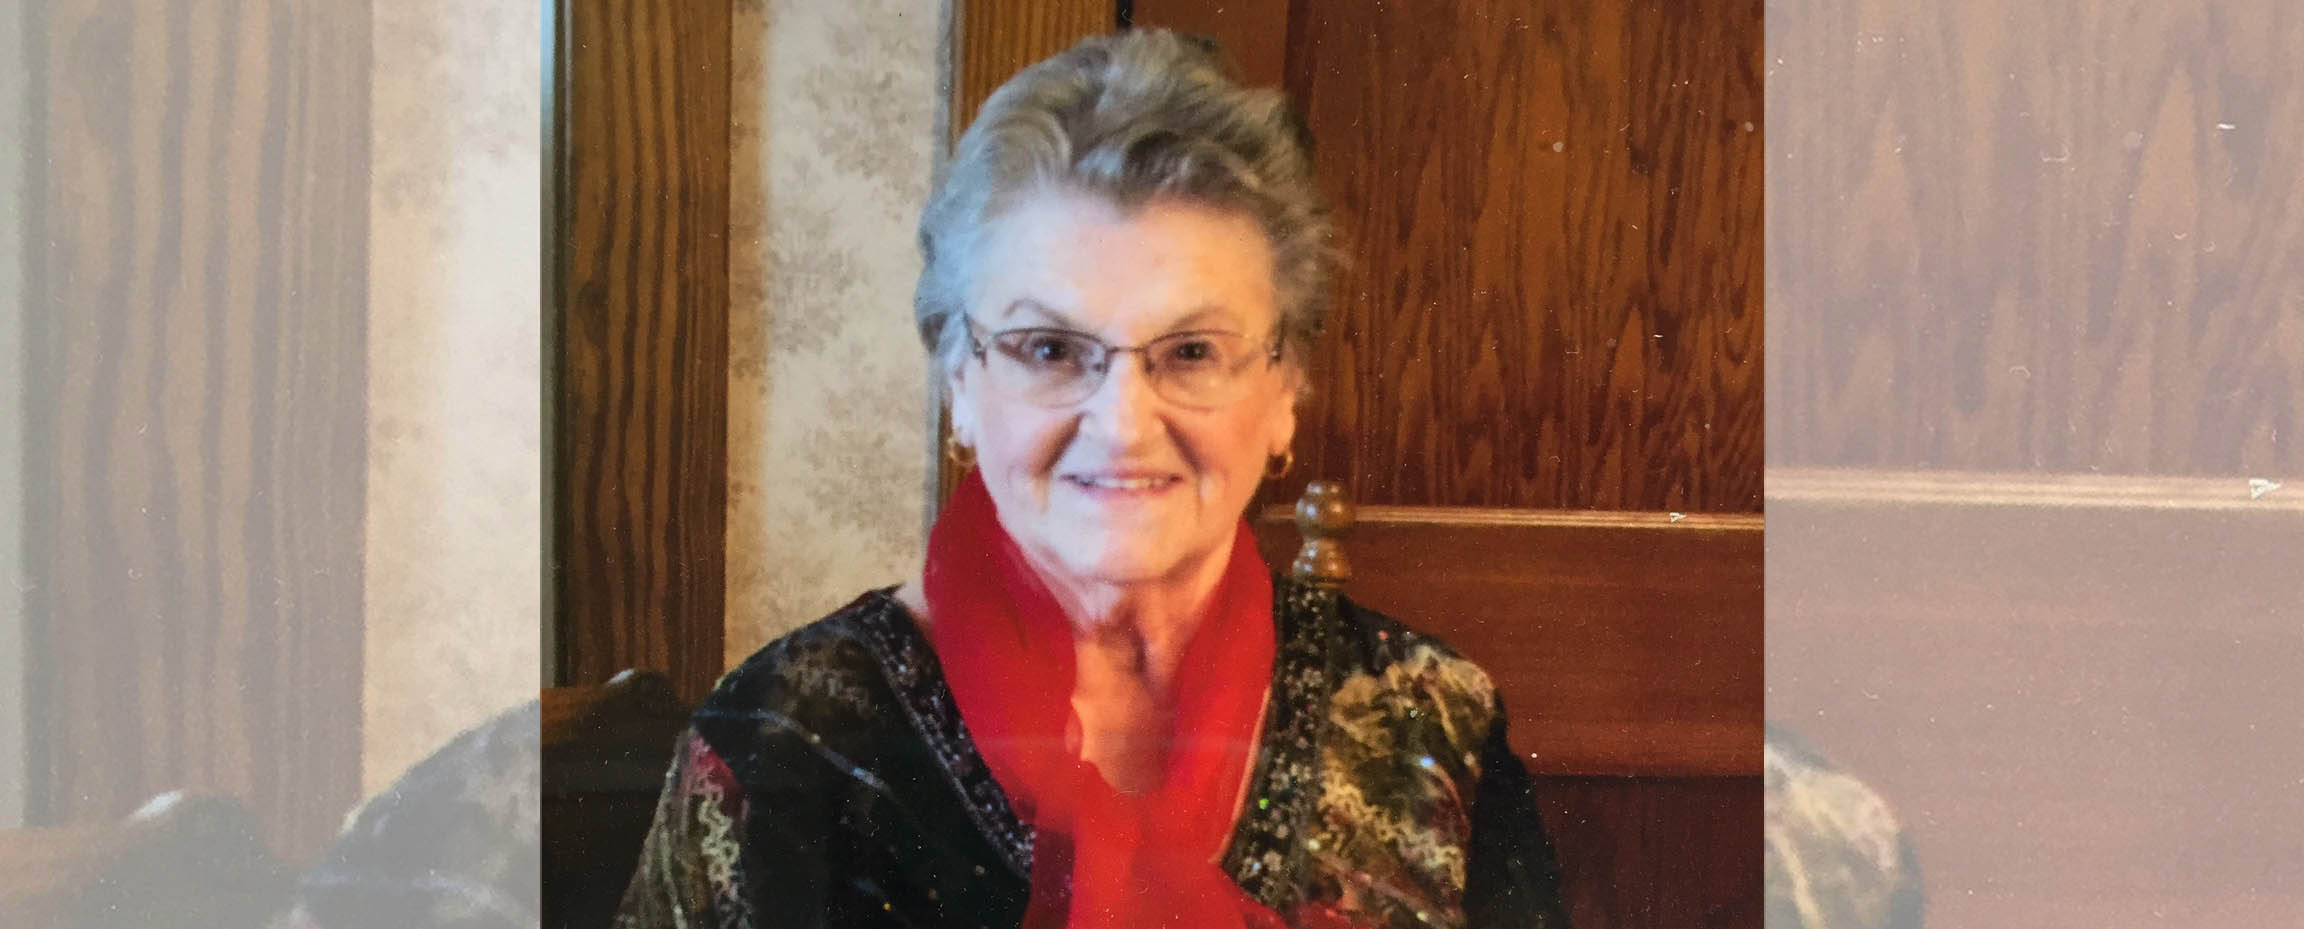 Mary Louise Kozak, 79, lived t the home on East Eden Road with her 48-year-old son Wayne. (Provided photo)